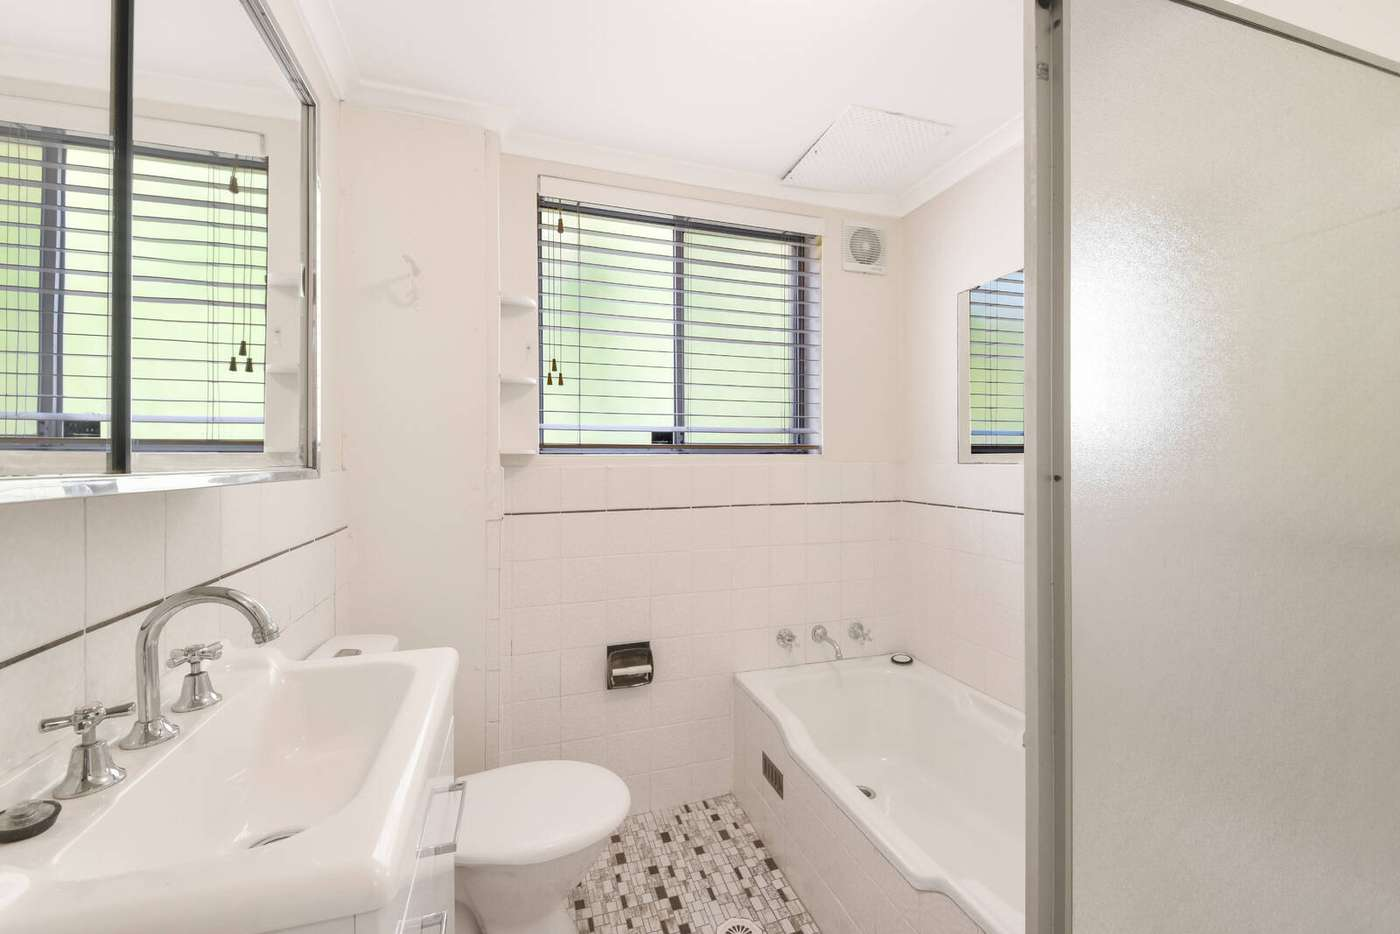 Fifth view of Homely apartment listing, 1/55 Albert Street, Hornsby NSW 2077